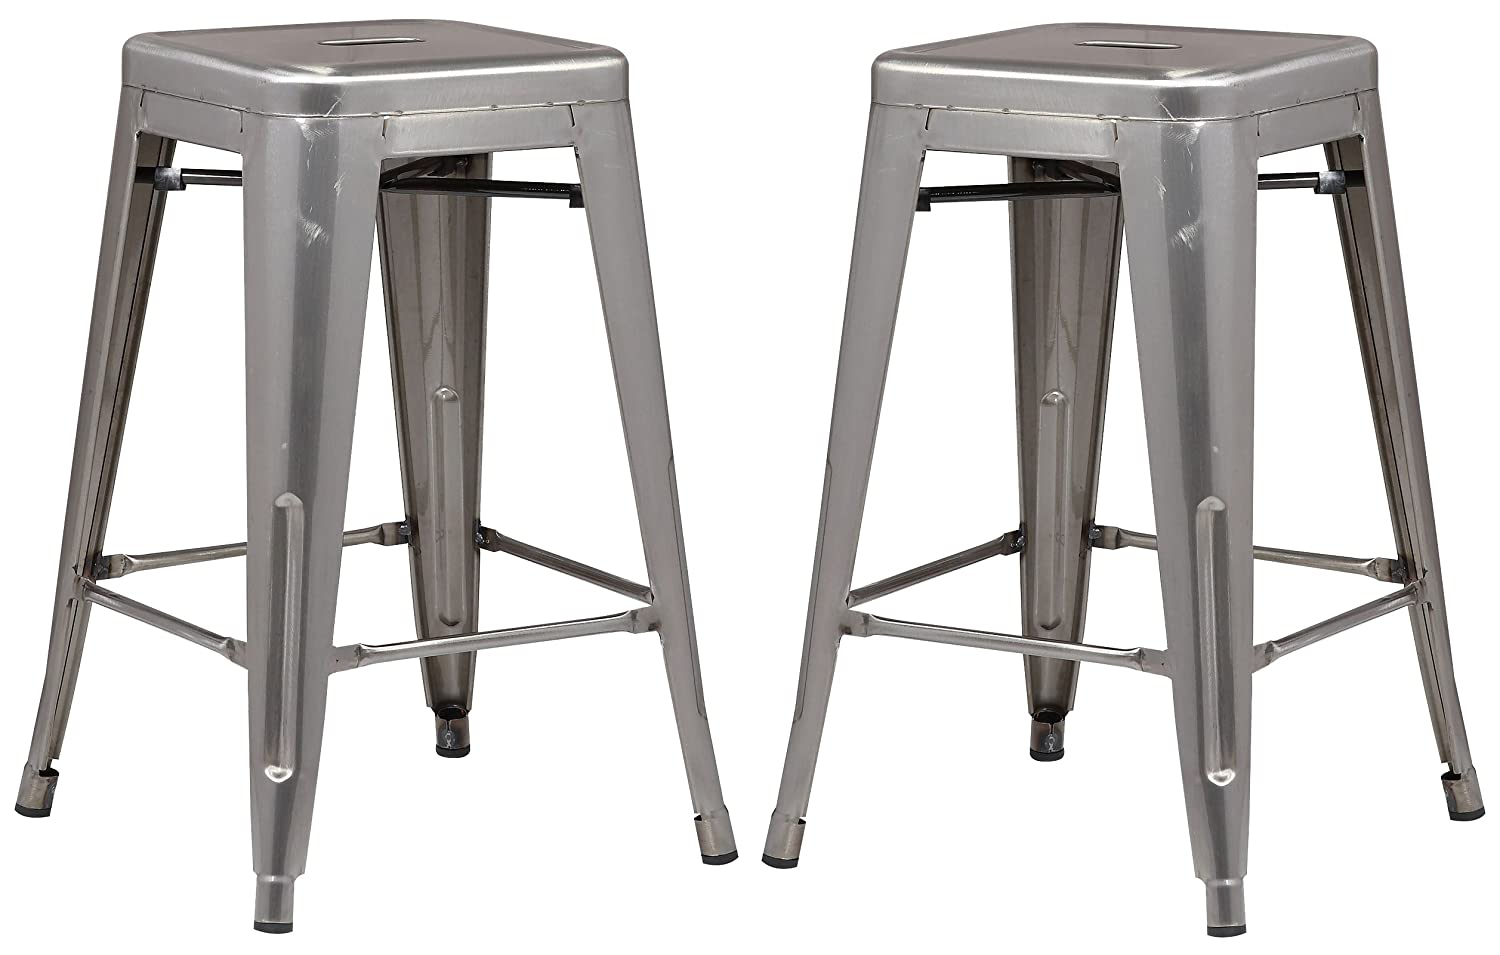 Poly and Bark Trattoria 24 Inch Counter Height Industrial Metal Bar Stool in Polished Gunmetal Set of 2